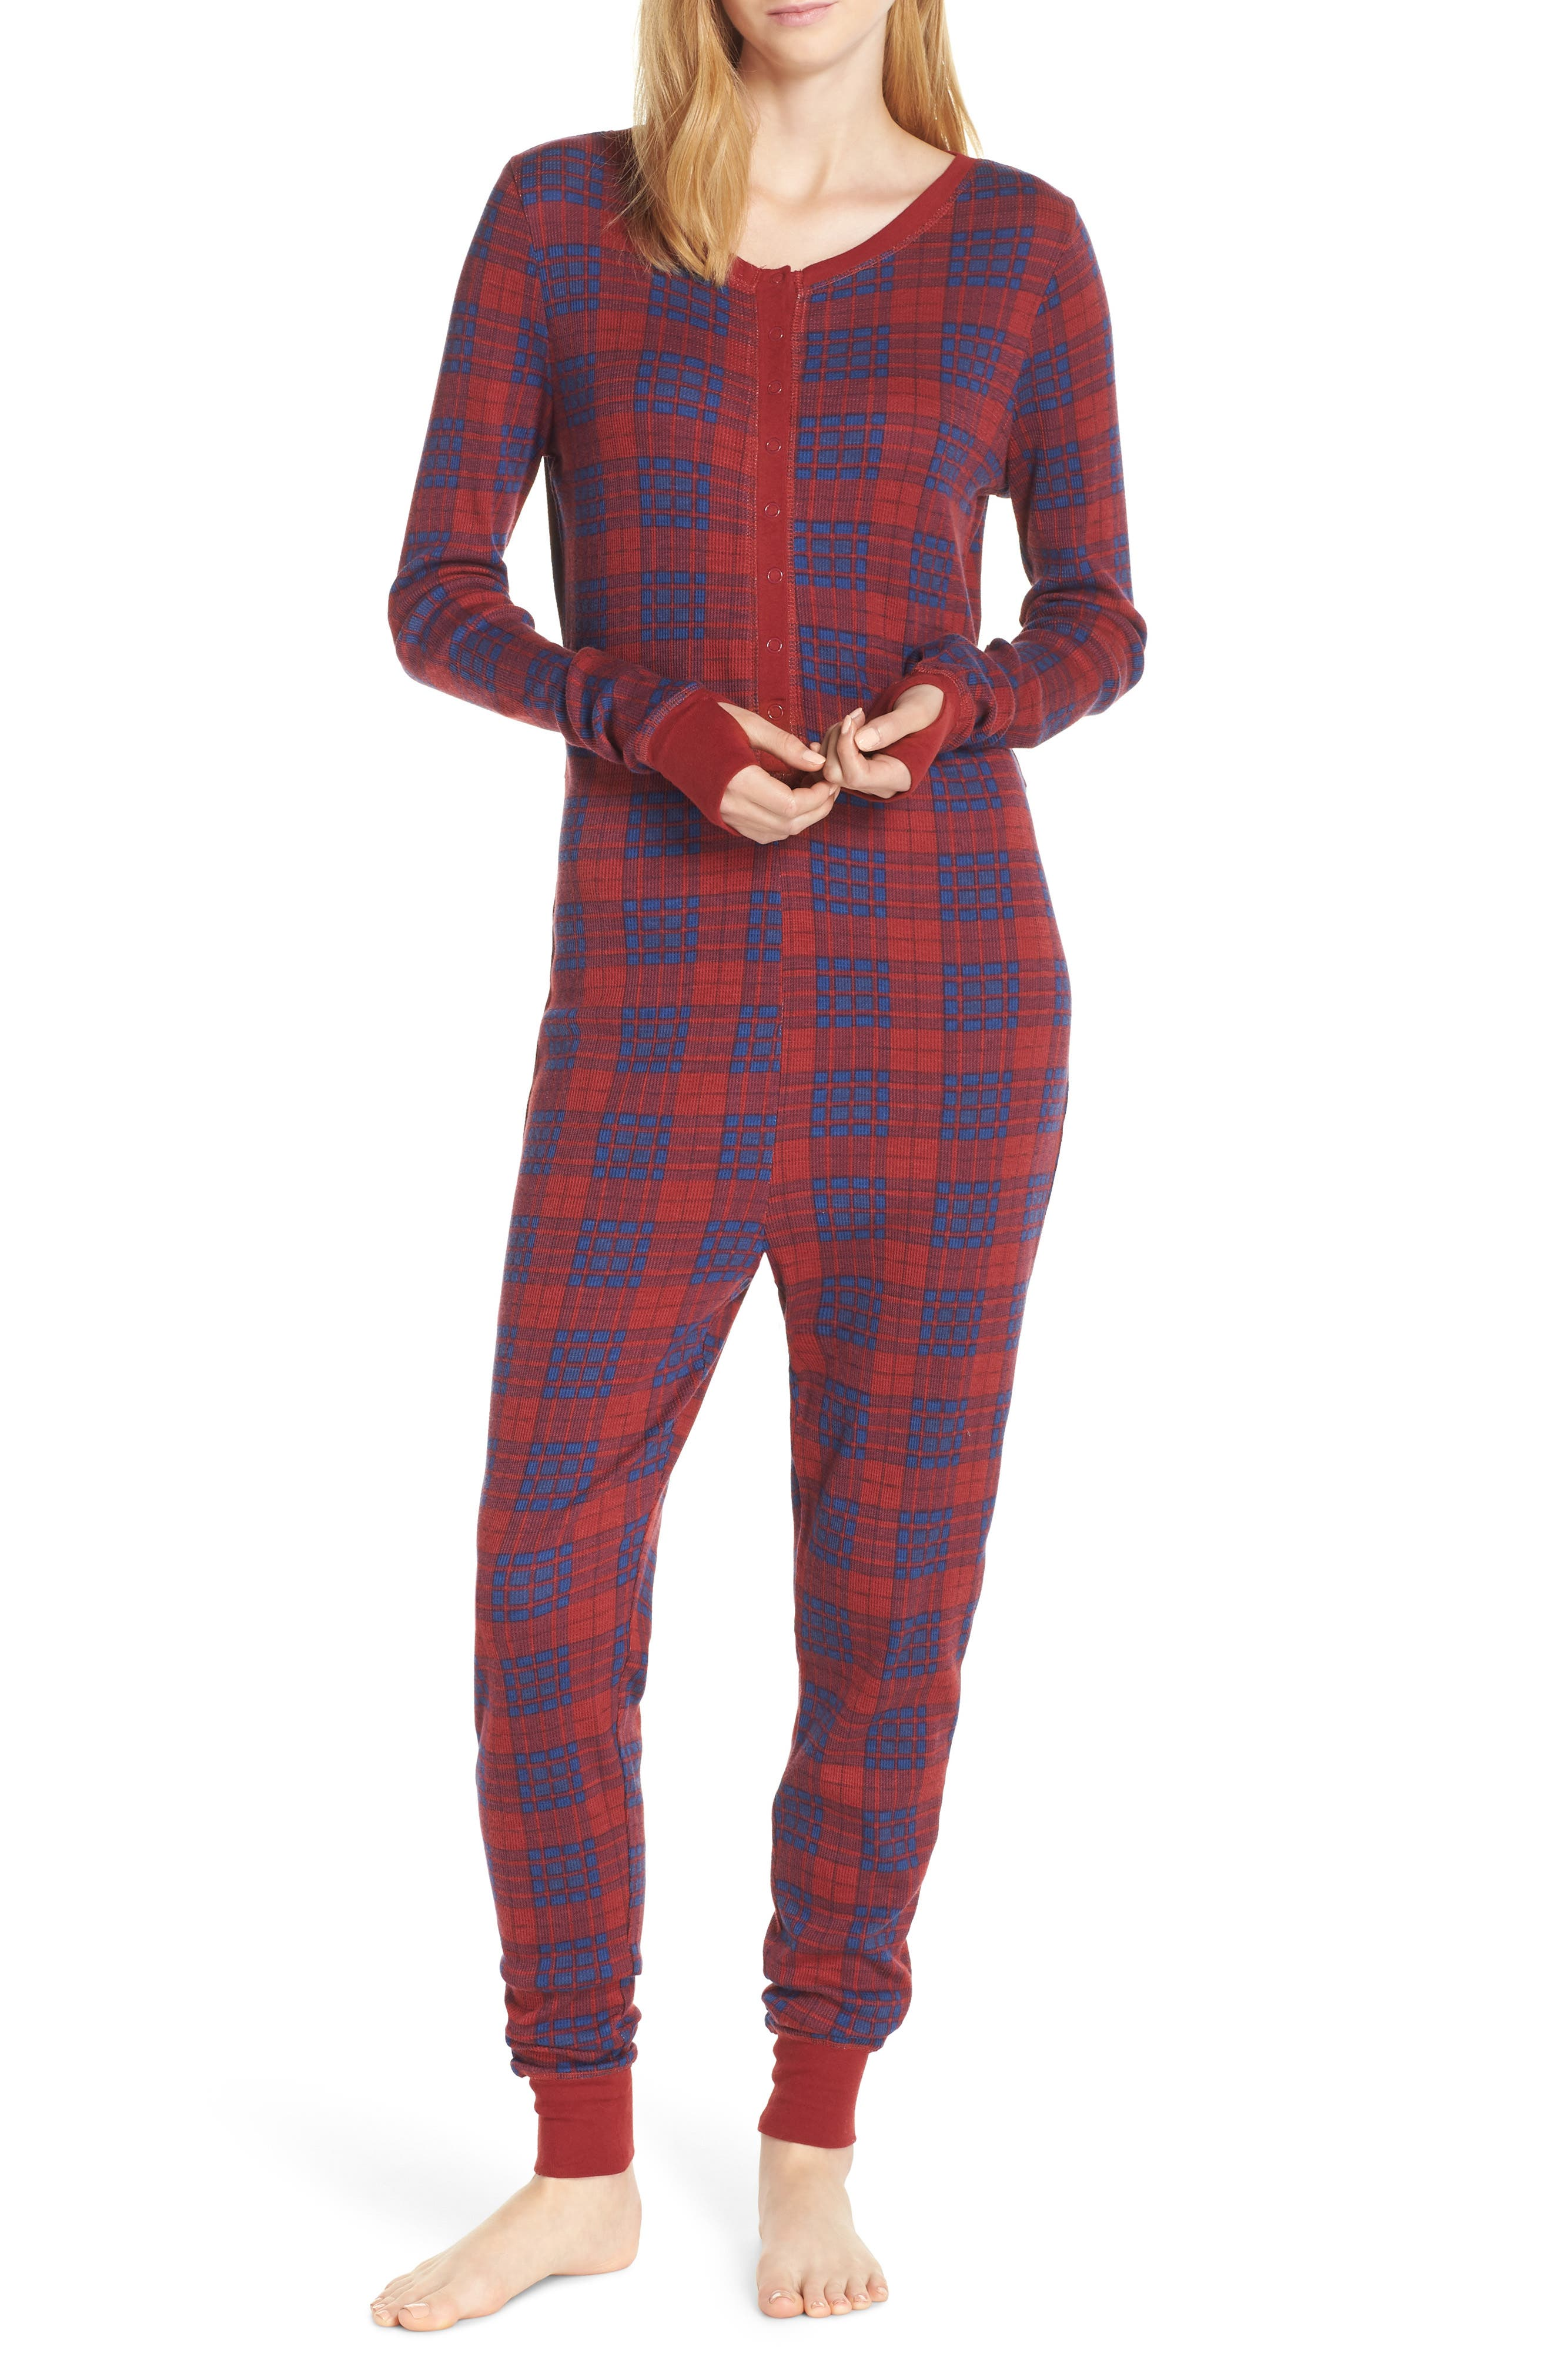 Retrospective Co. Thermal Pajama Jumpsuit, Burgundy